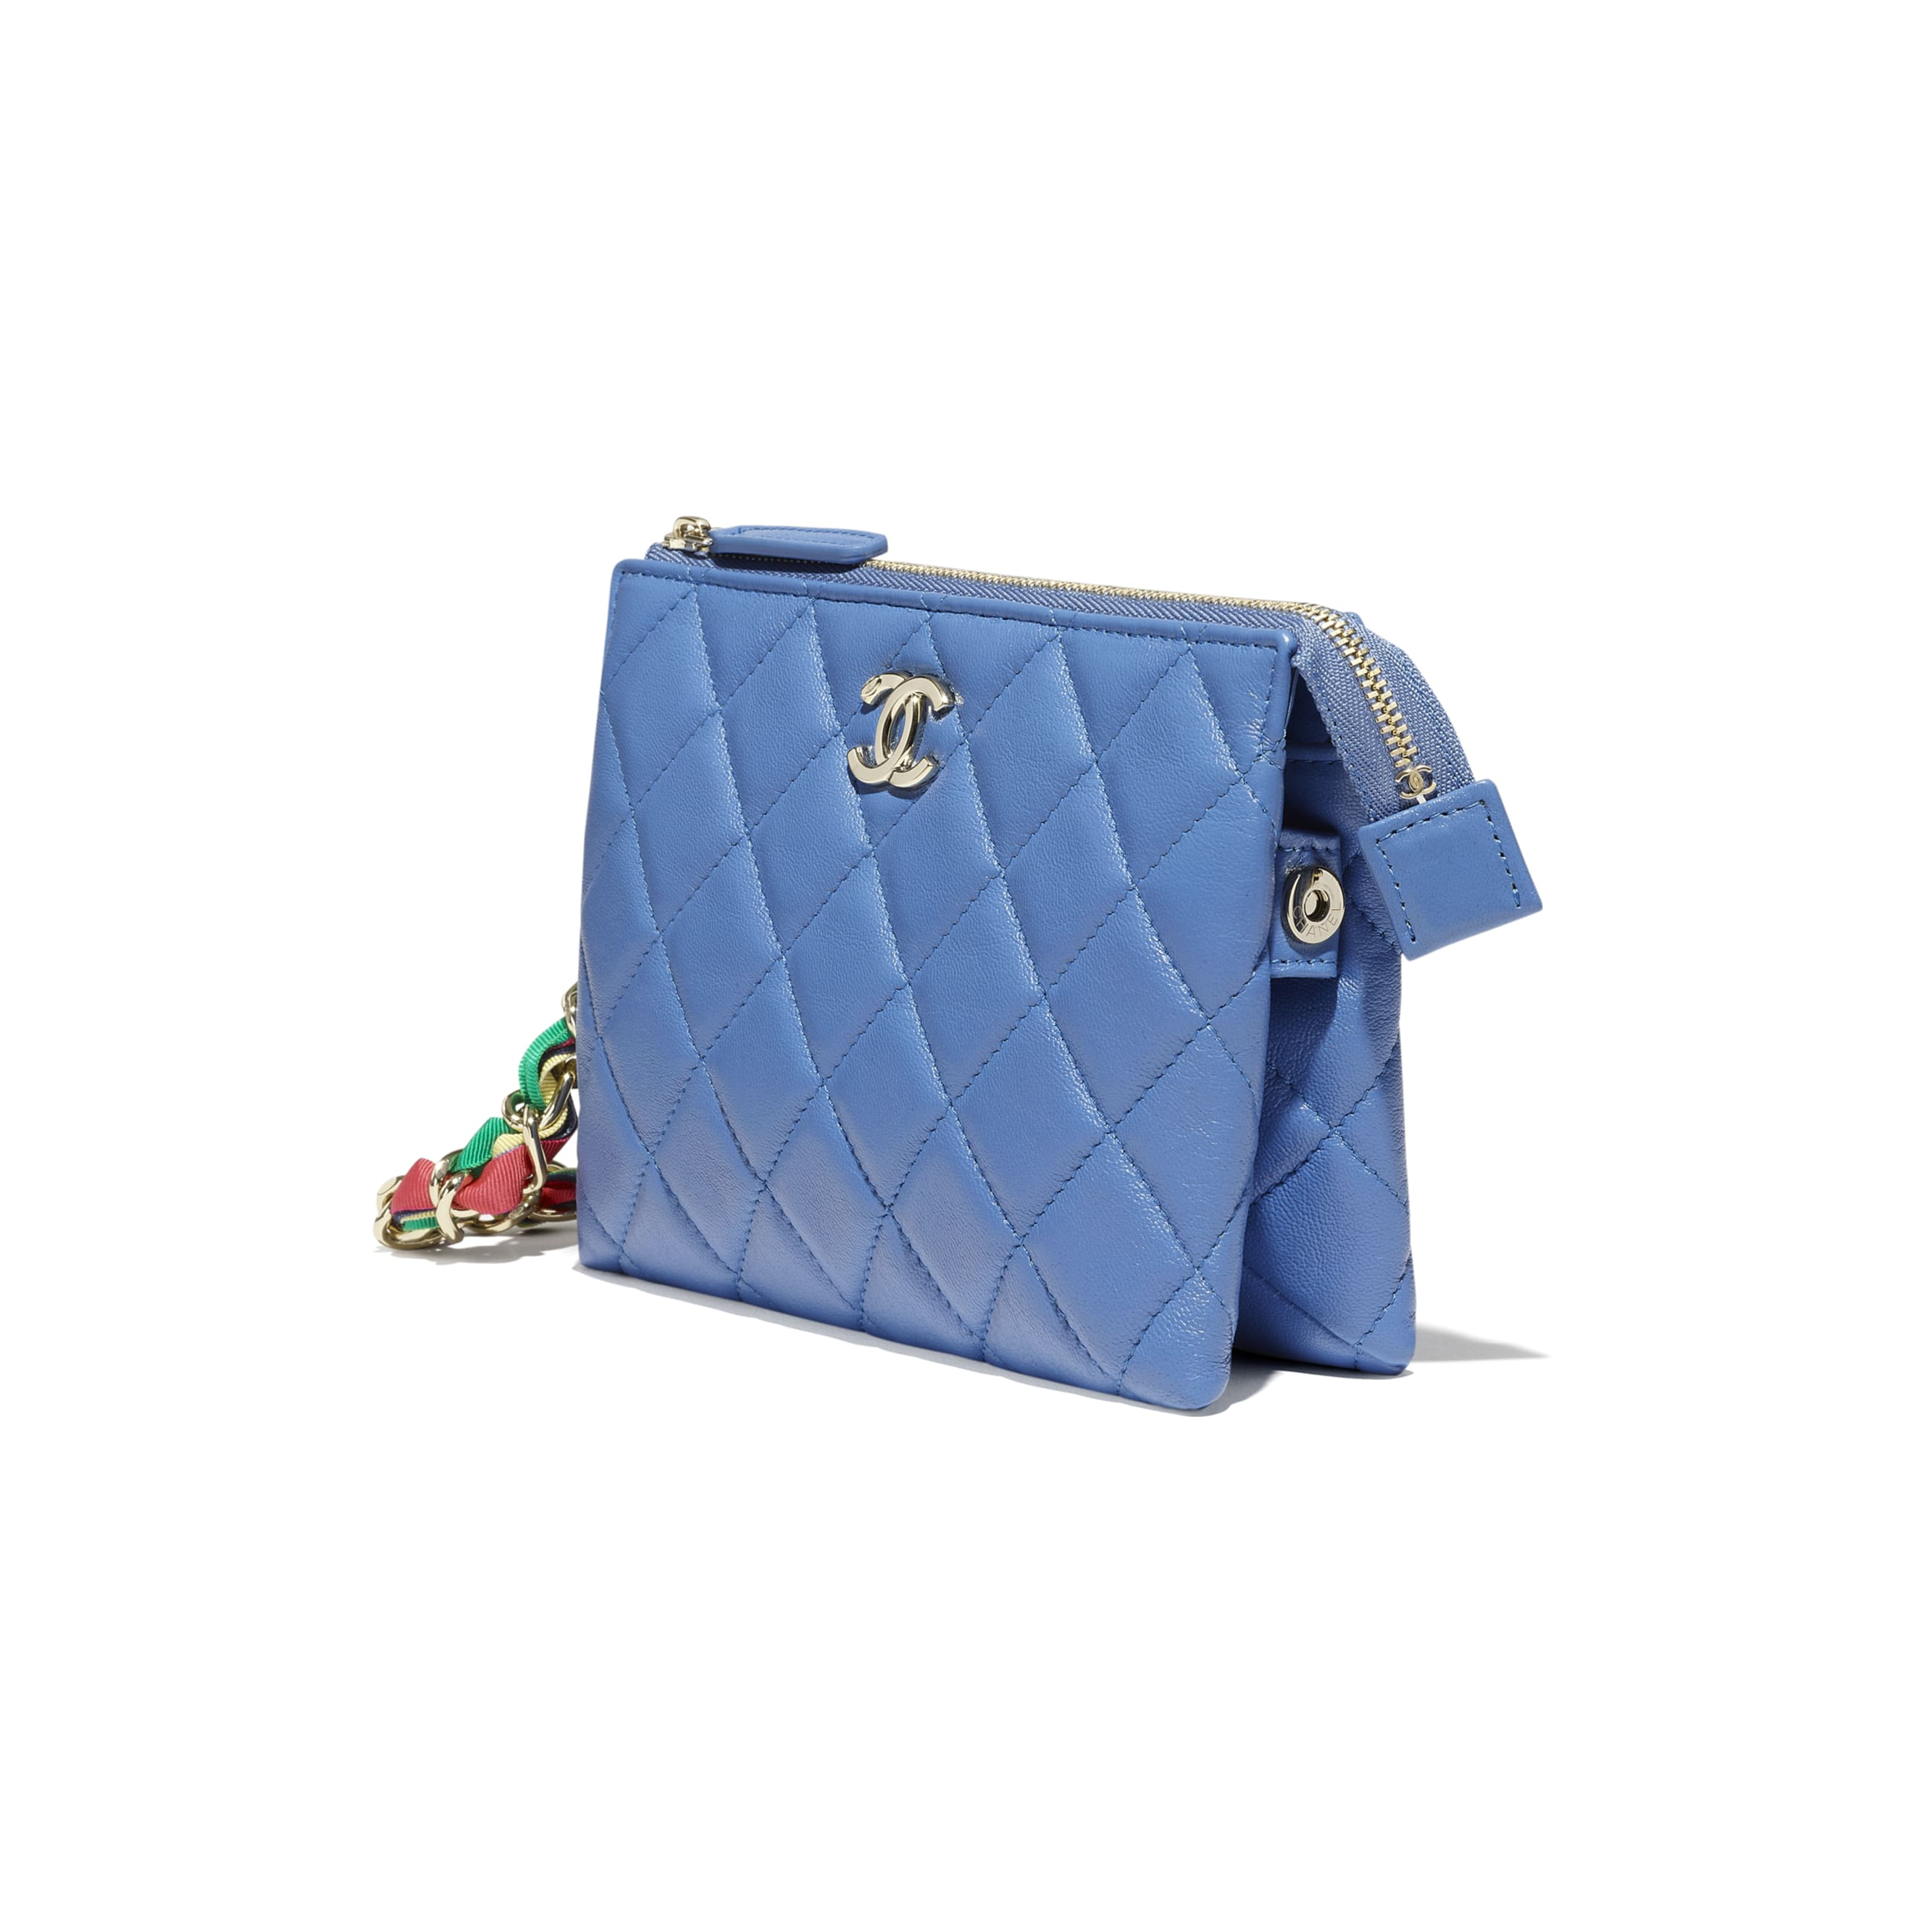 Pouch - Blue - Shiny Lambskin, Ribbon & Gold-Tone Metal - CHANEL - Other view - see standard sized version